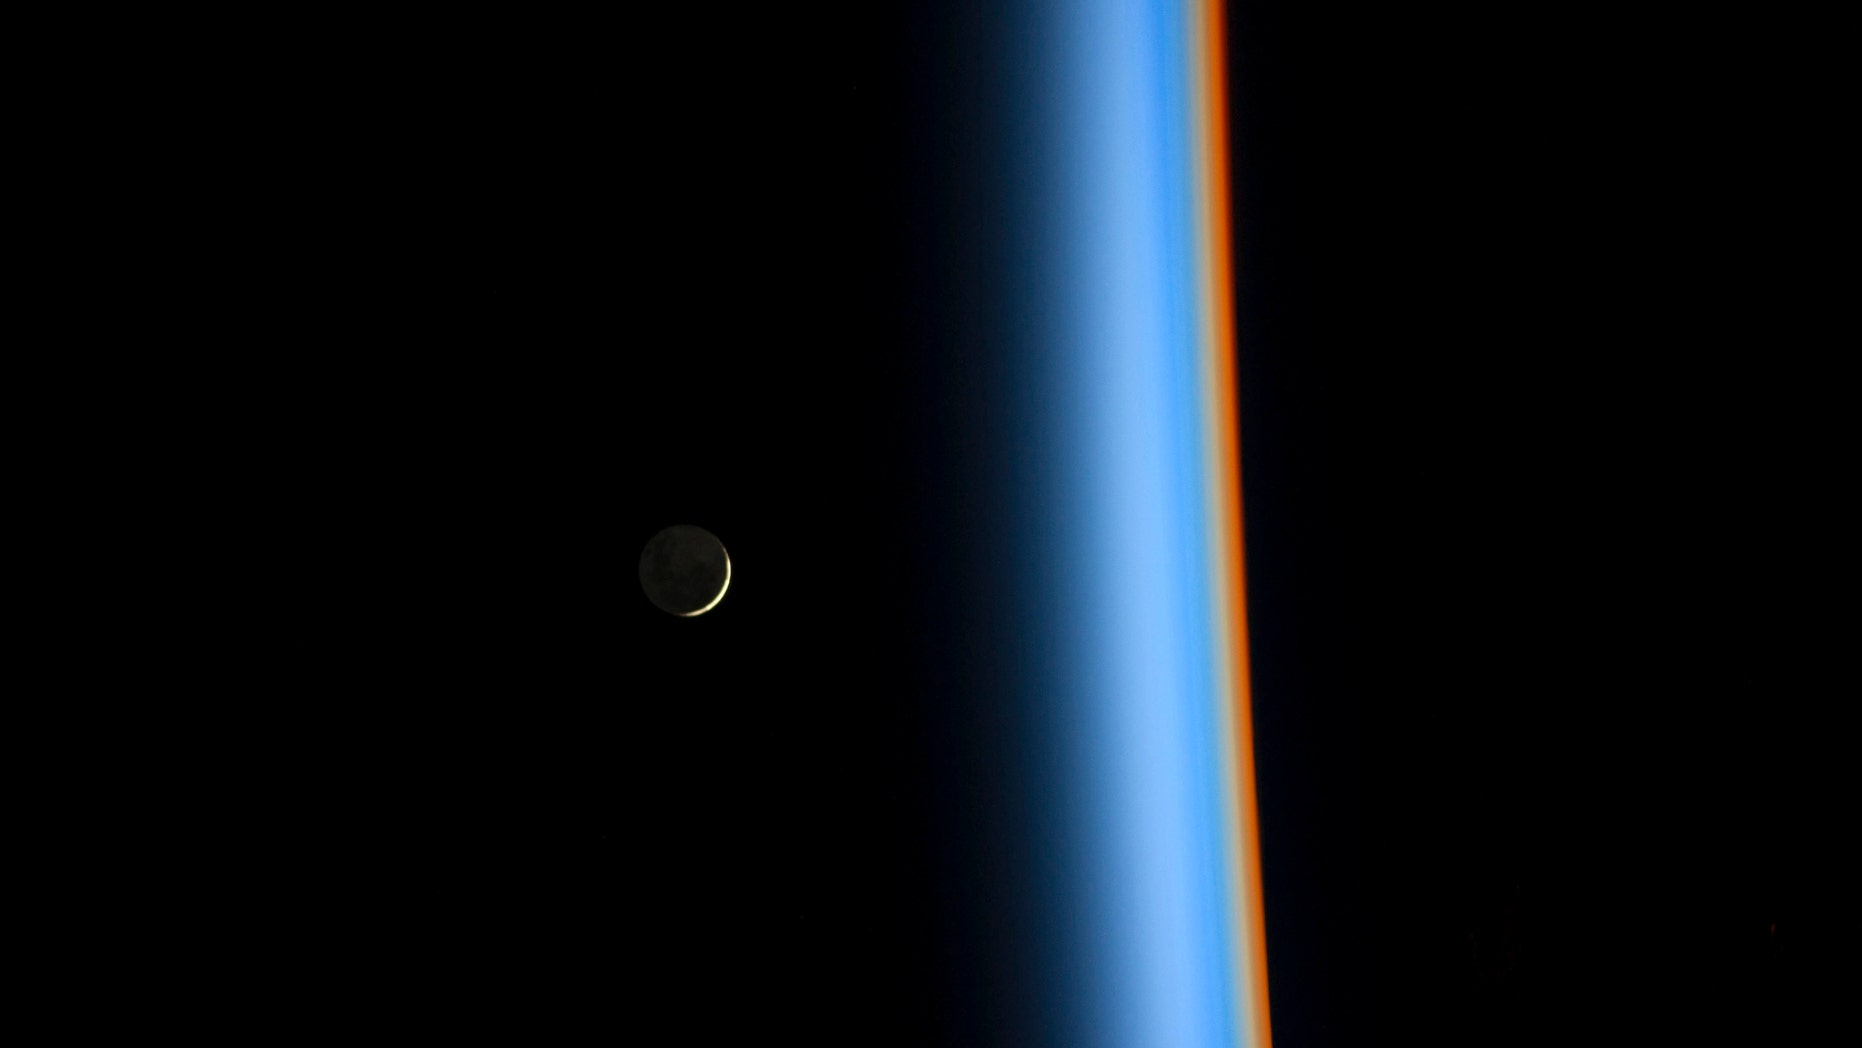 A crescent moon rises over the cusp of the Earth's atmosphere.